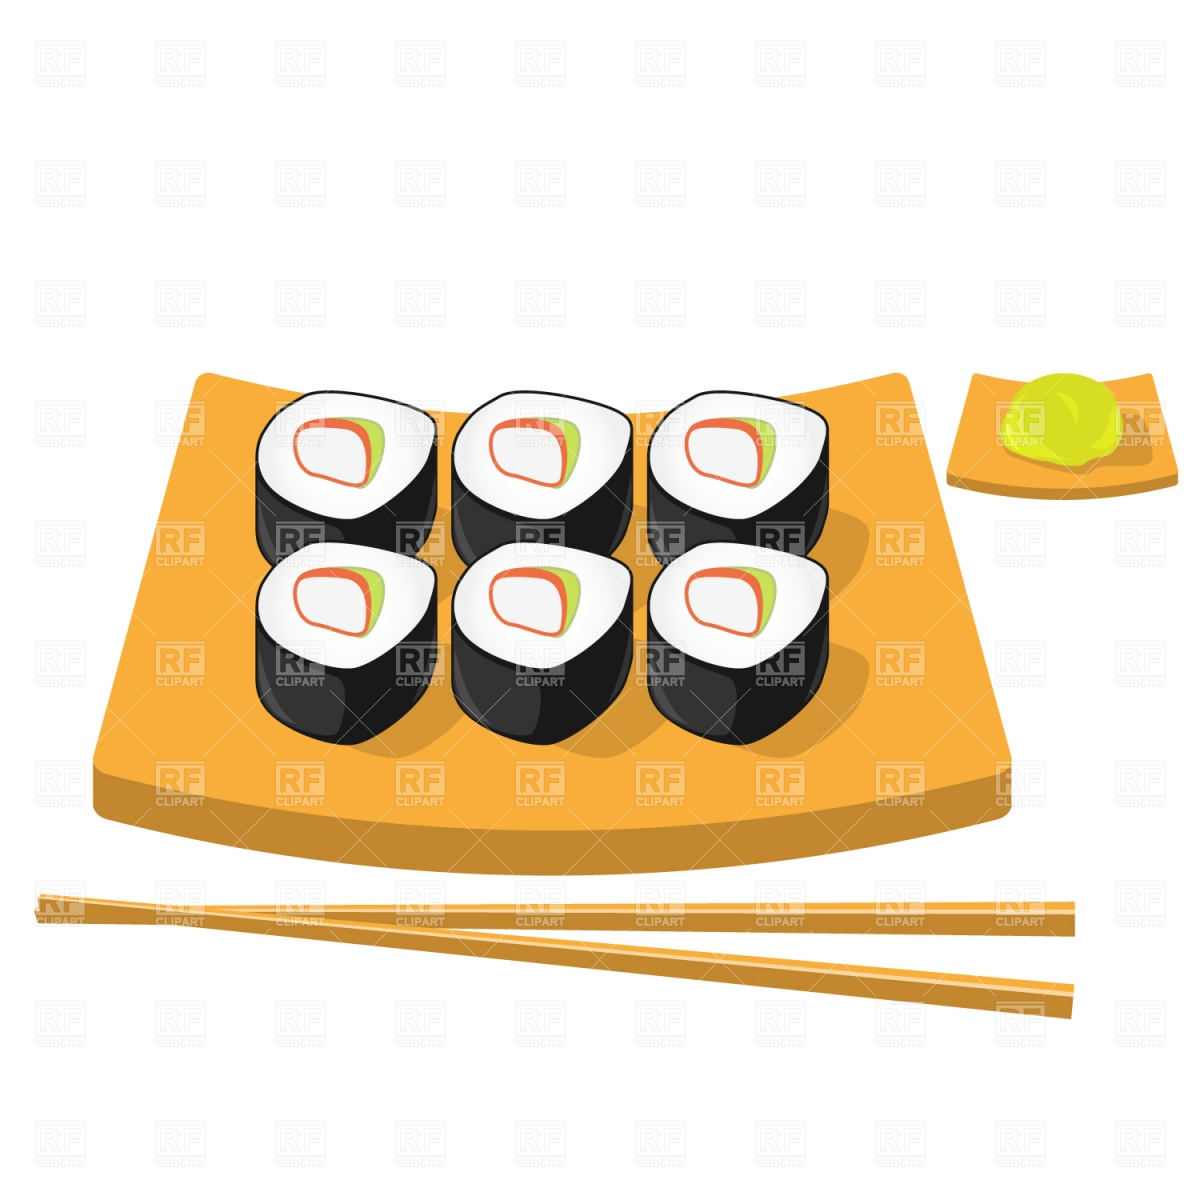 Sushi Clipart Hd Walls Find .-Sushi Clipart Hd Walls Find .-10